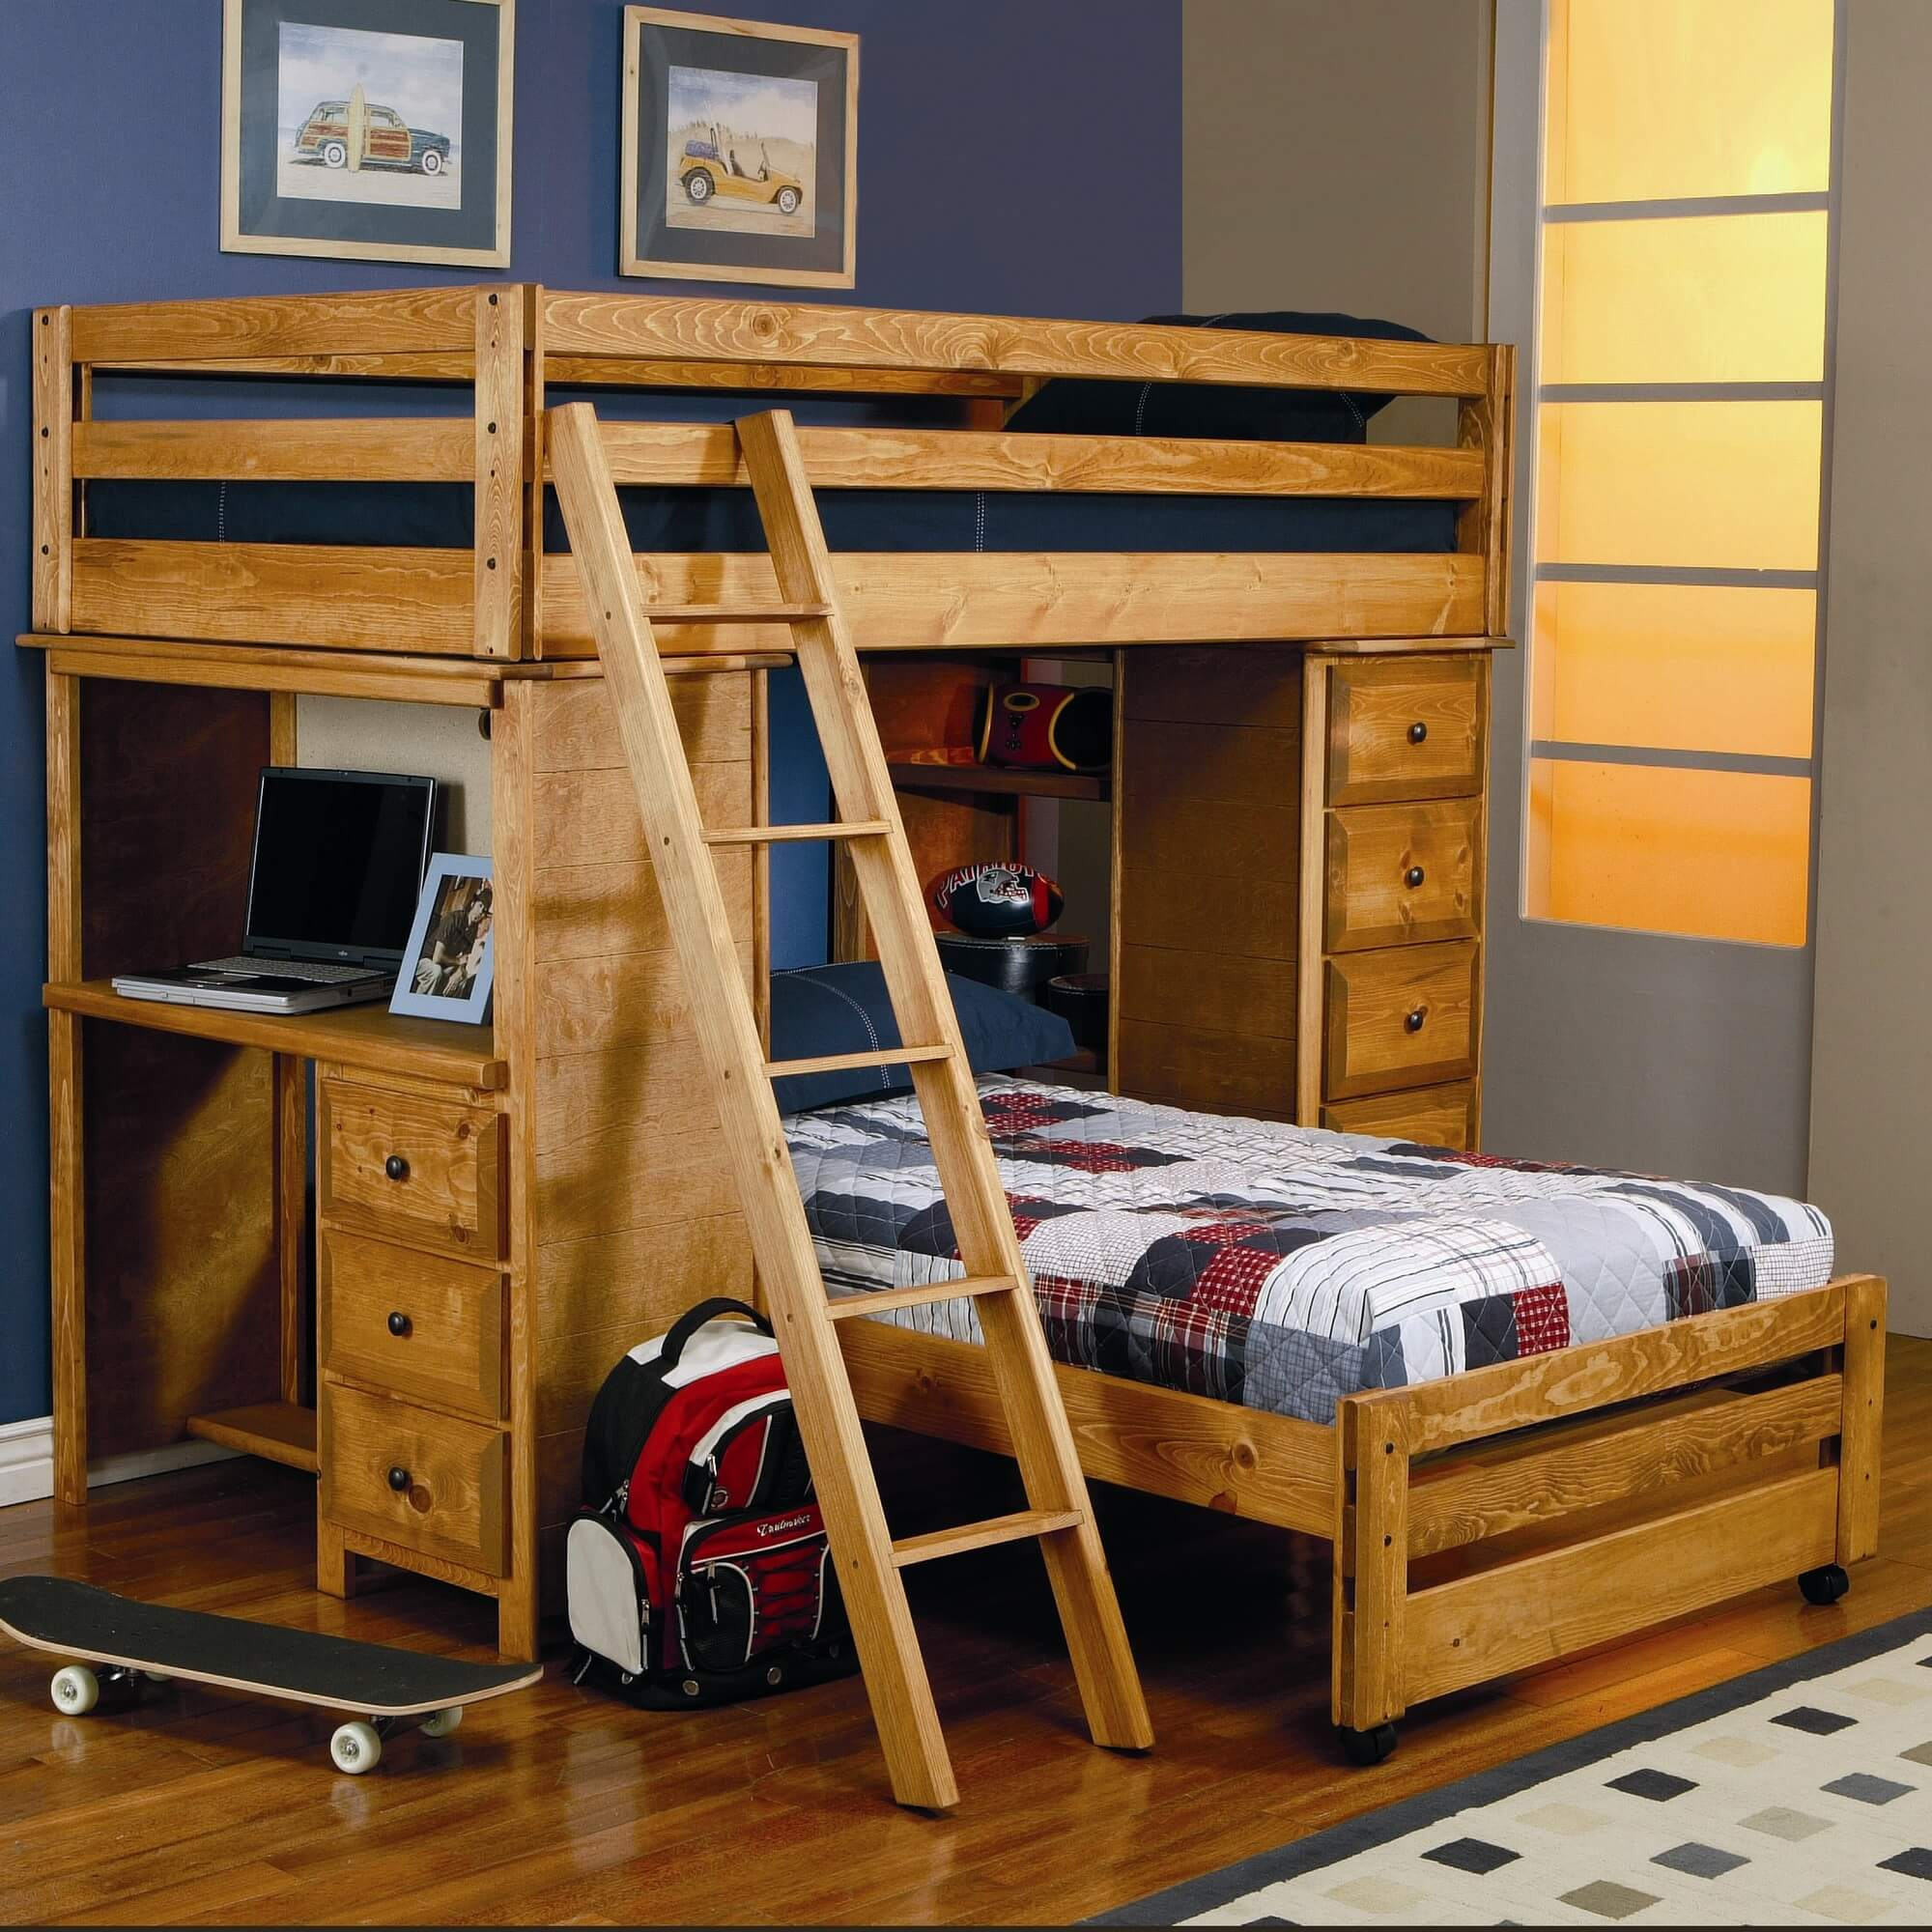 Awesome wood l-shaped bunk bed with desk and ladder.